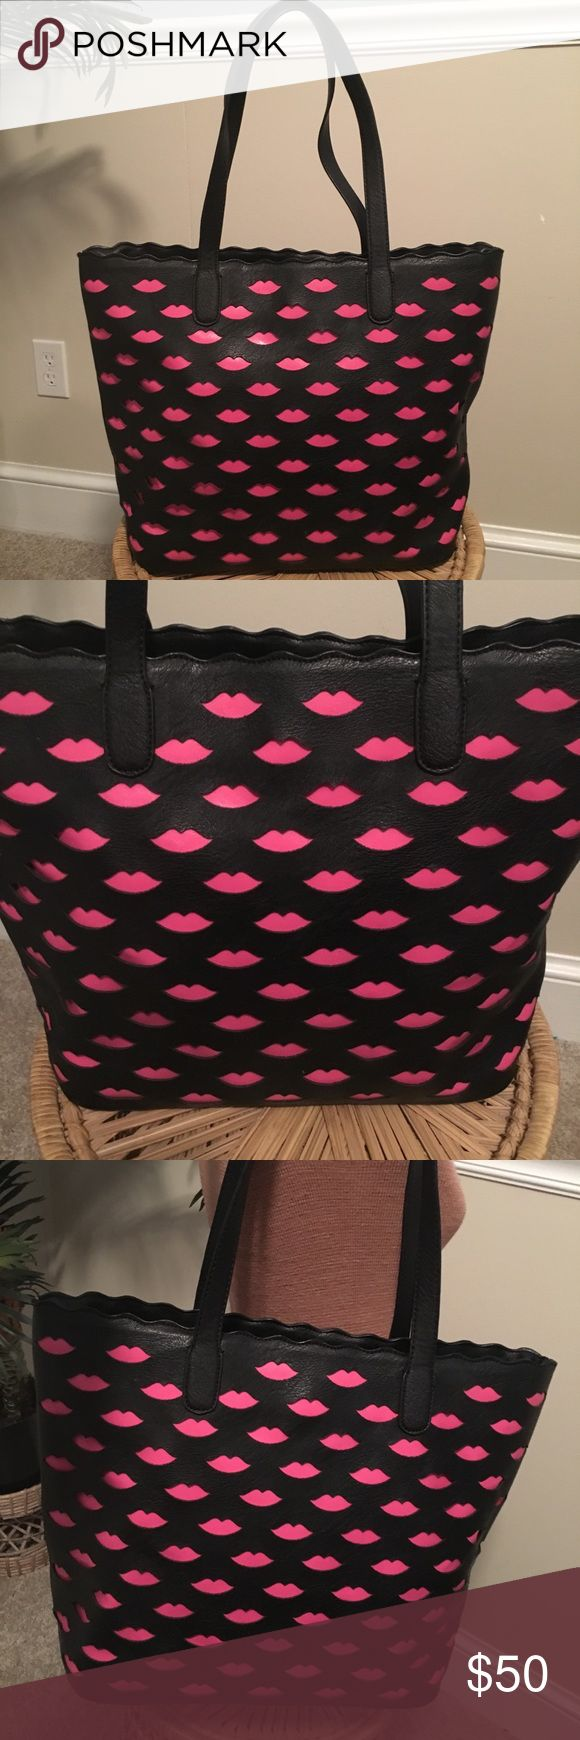 MELIE BIANCO Excellent, like new condition ♥️ Melie Bianco Bags Totes